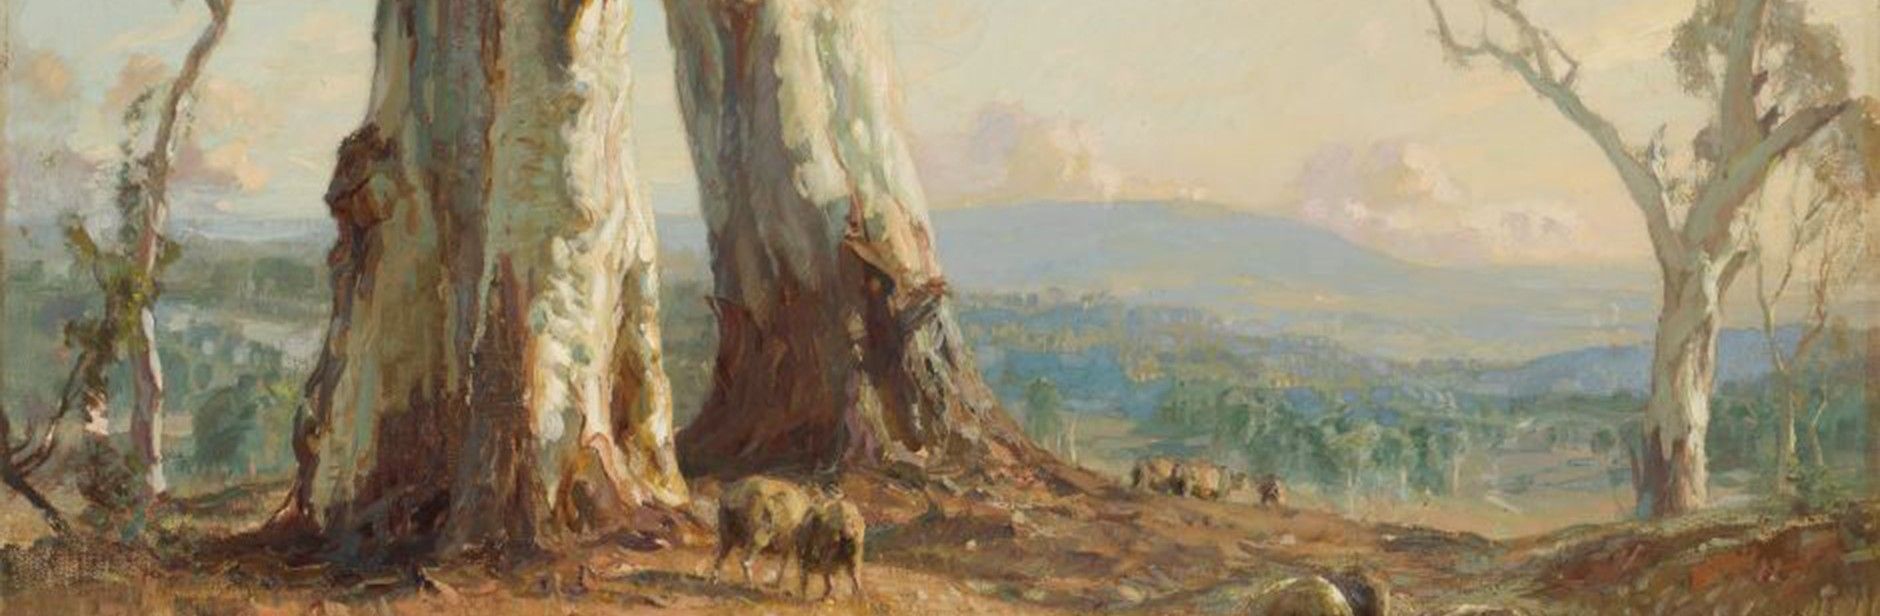 Hans Heysen, 'Morning Light', 1913. Reproduced with the kind permission of the family of Hans Heysen.